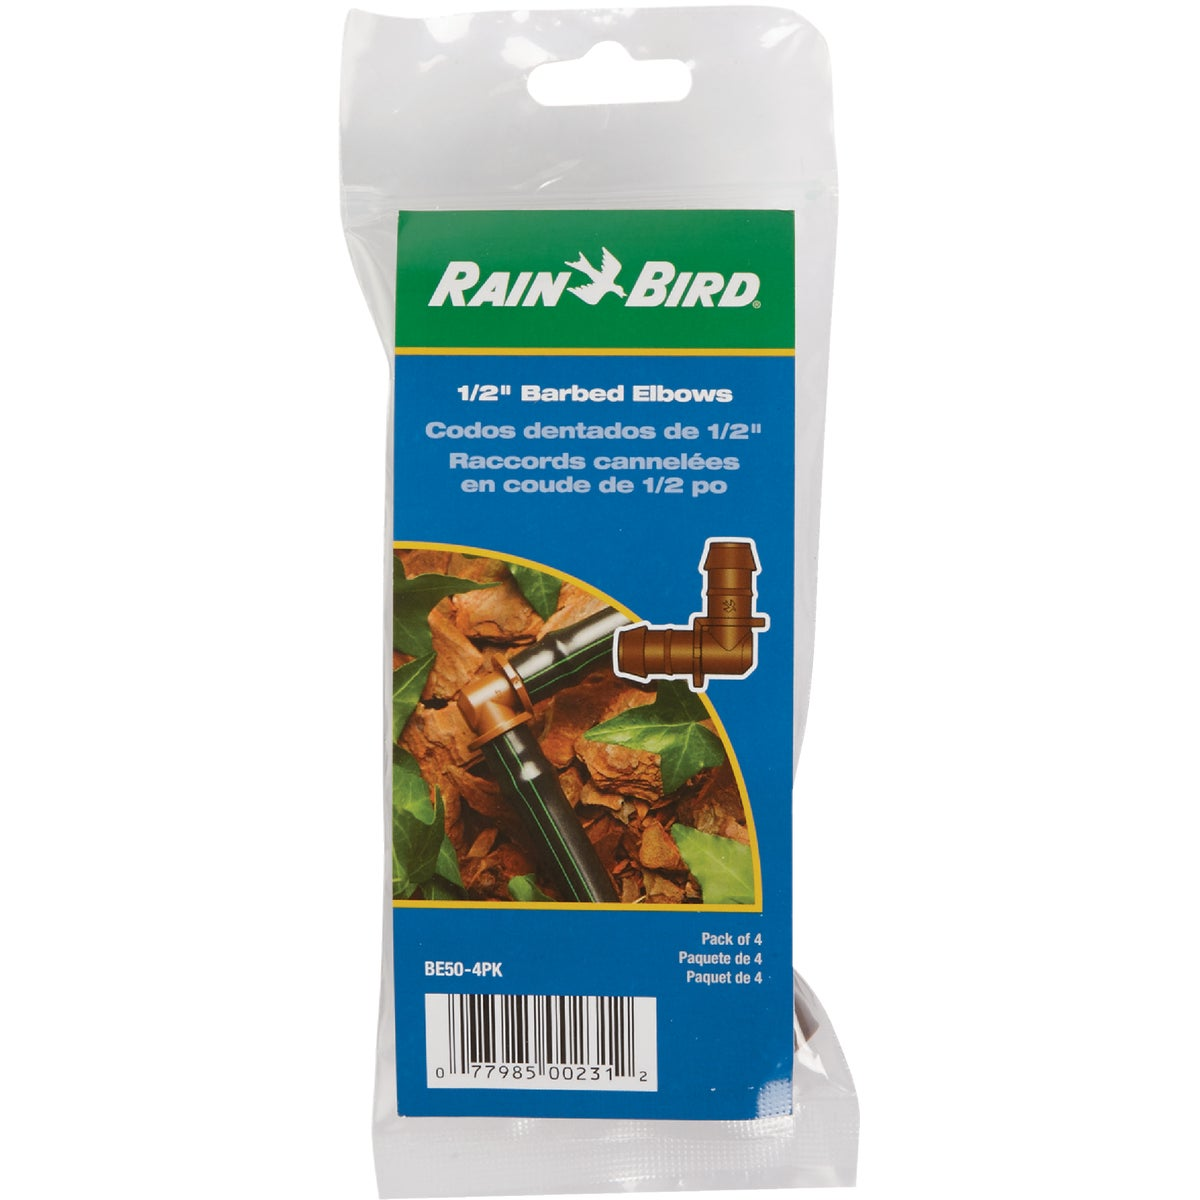 "4-PK 1/2"" BARBED ELBOW - BE50-4PK by Rain Bird Corp Consu"